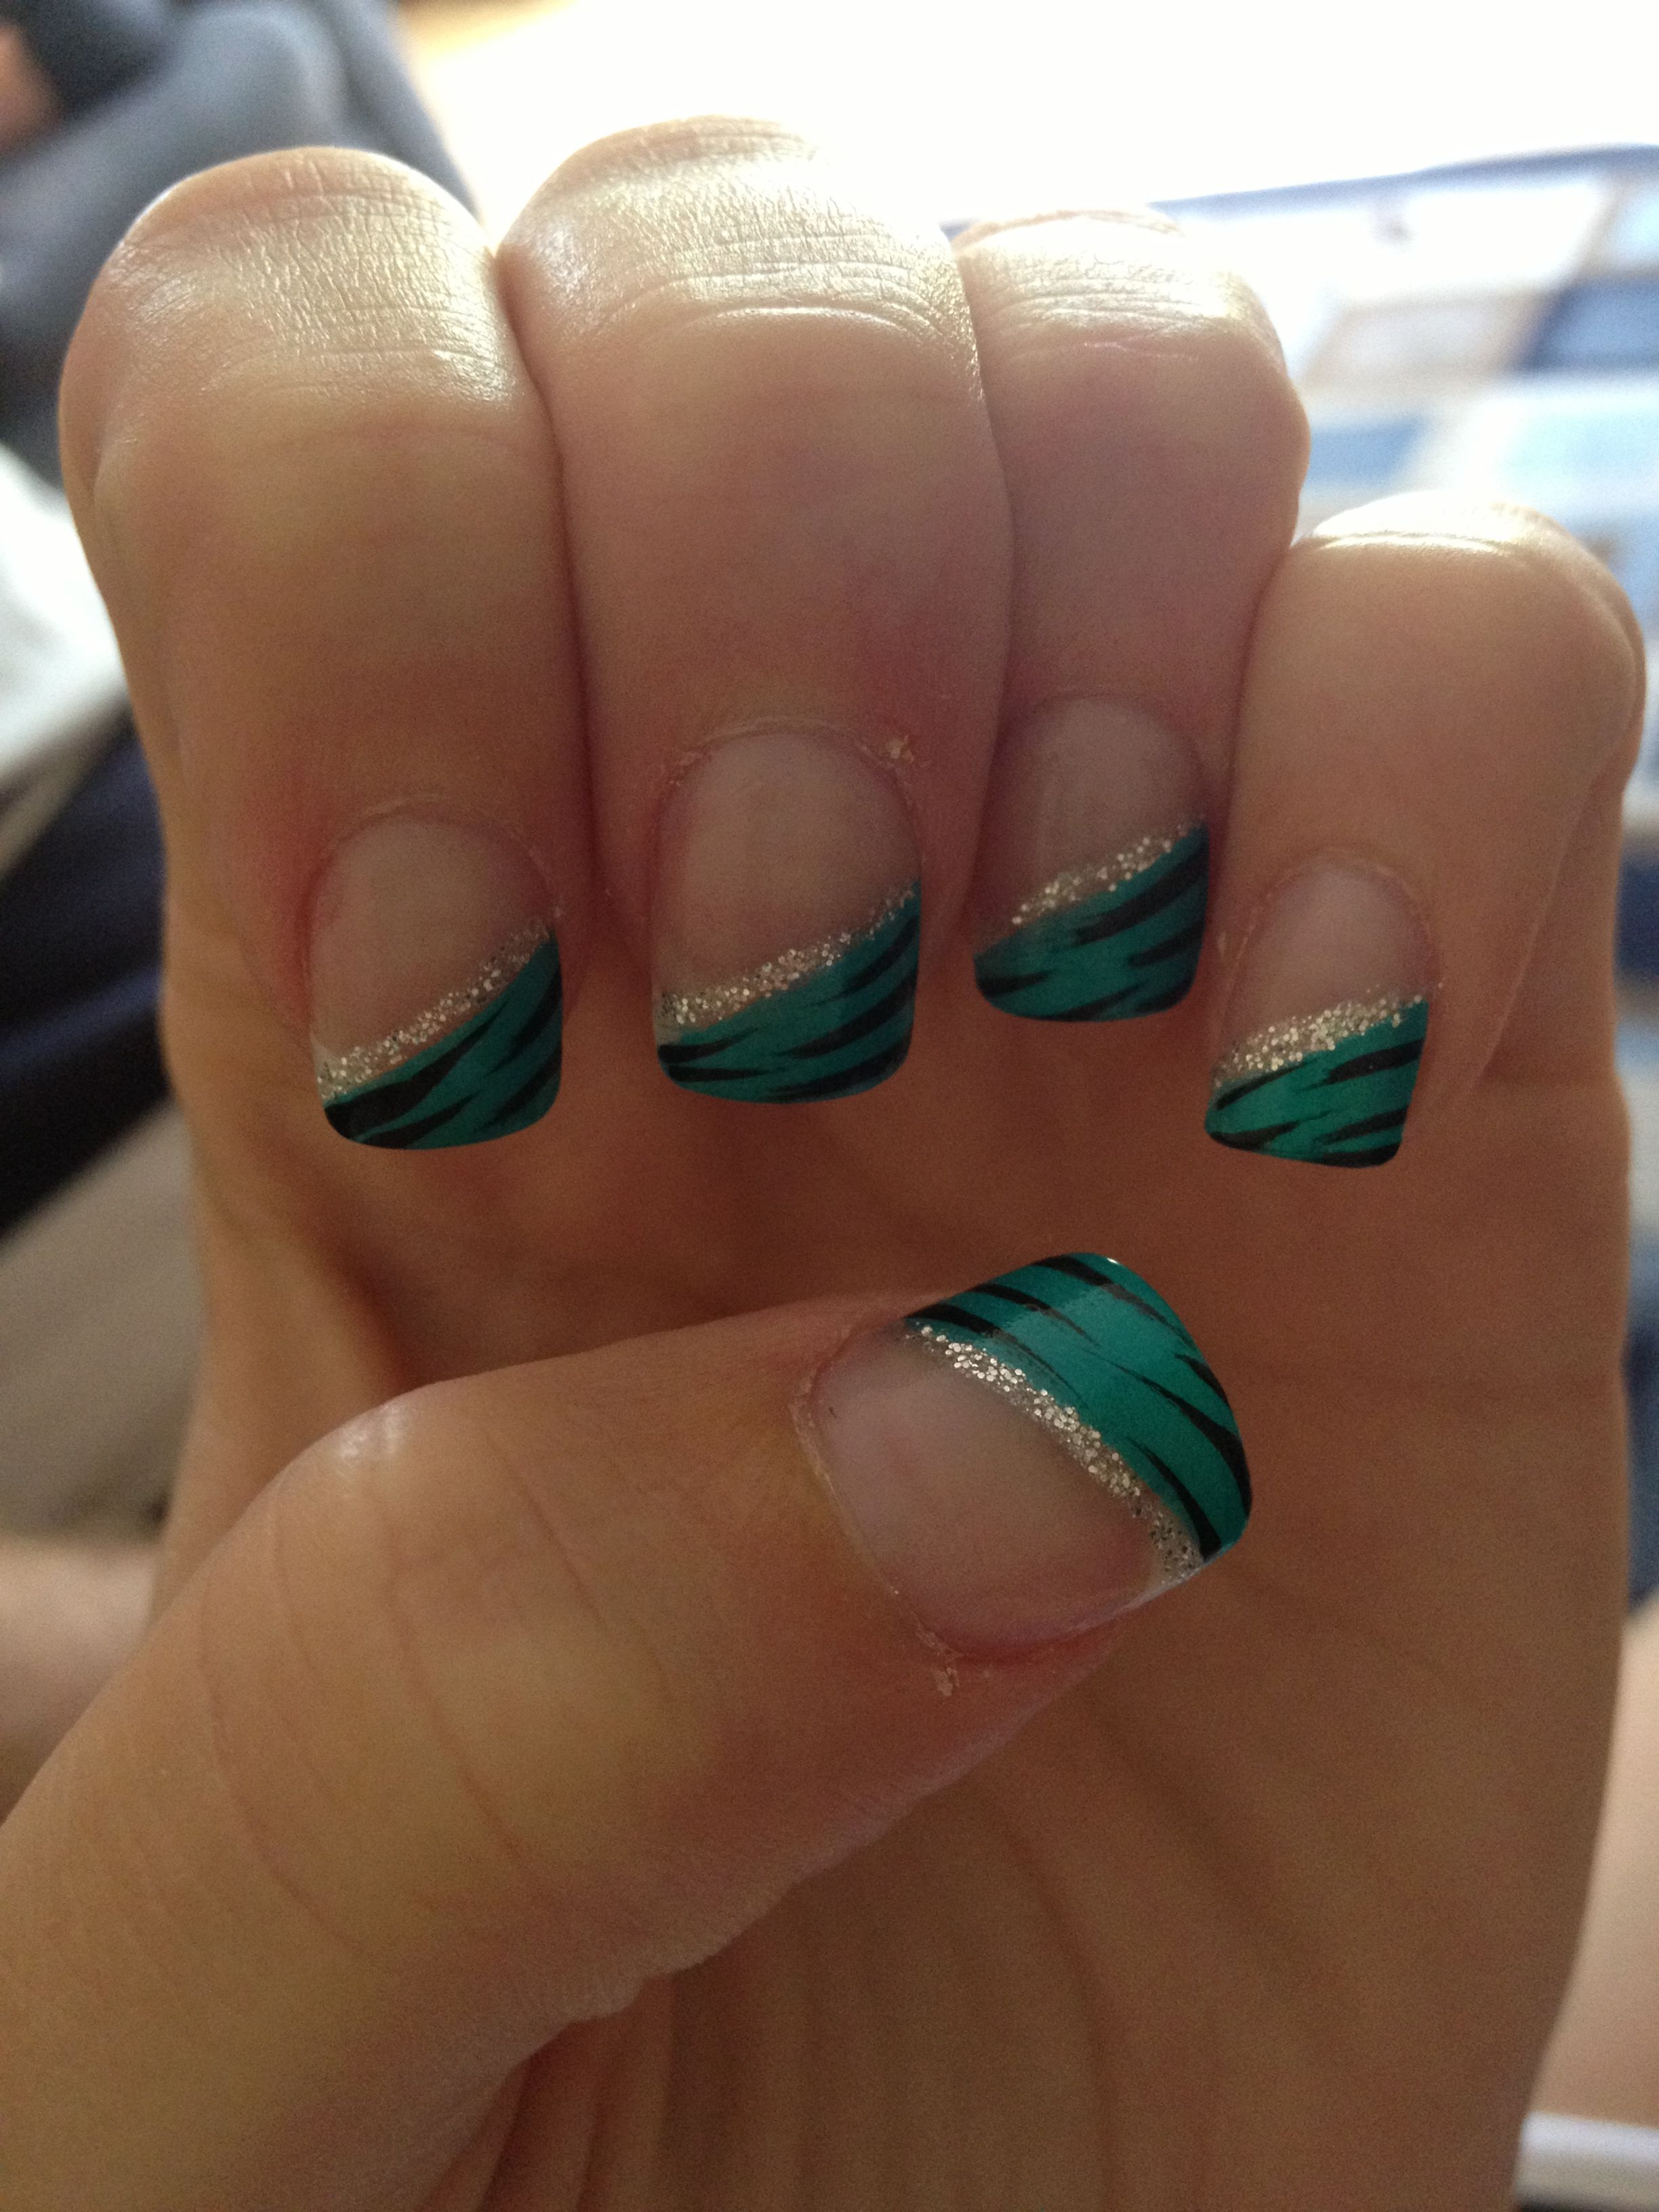 I Need To Find Someone To Do This To My Nails!!!! @Twylla